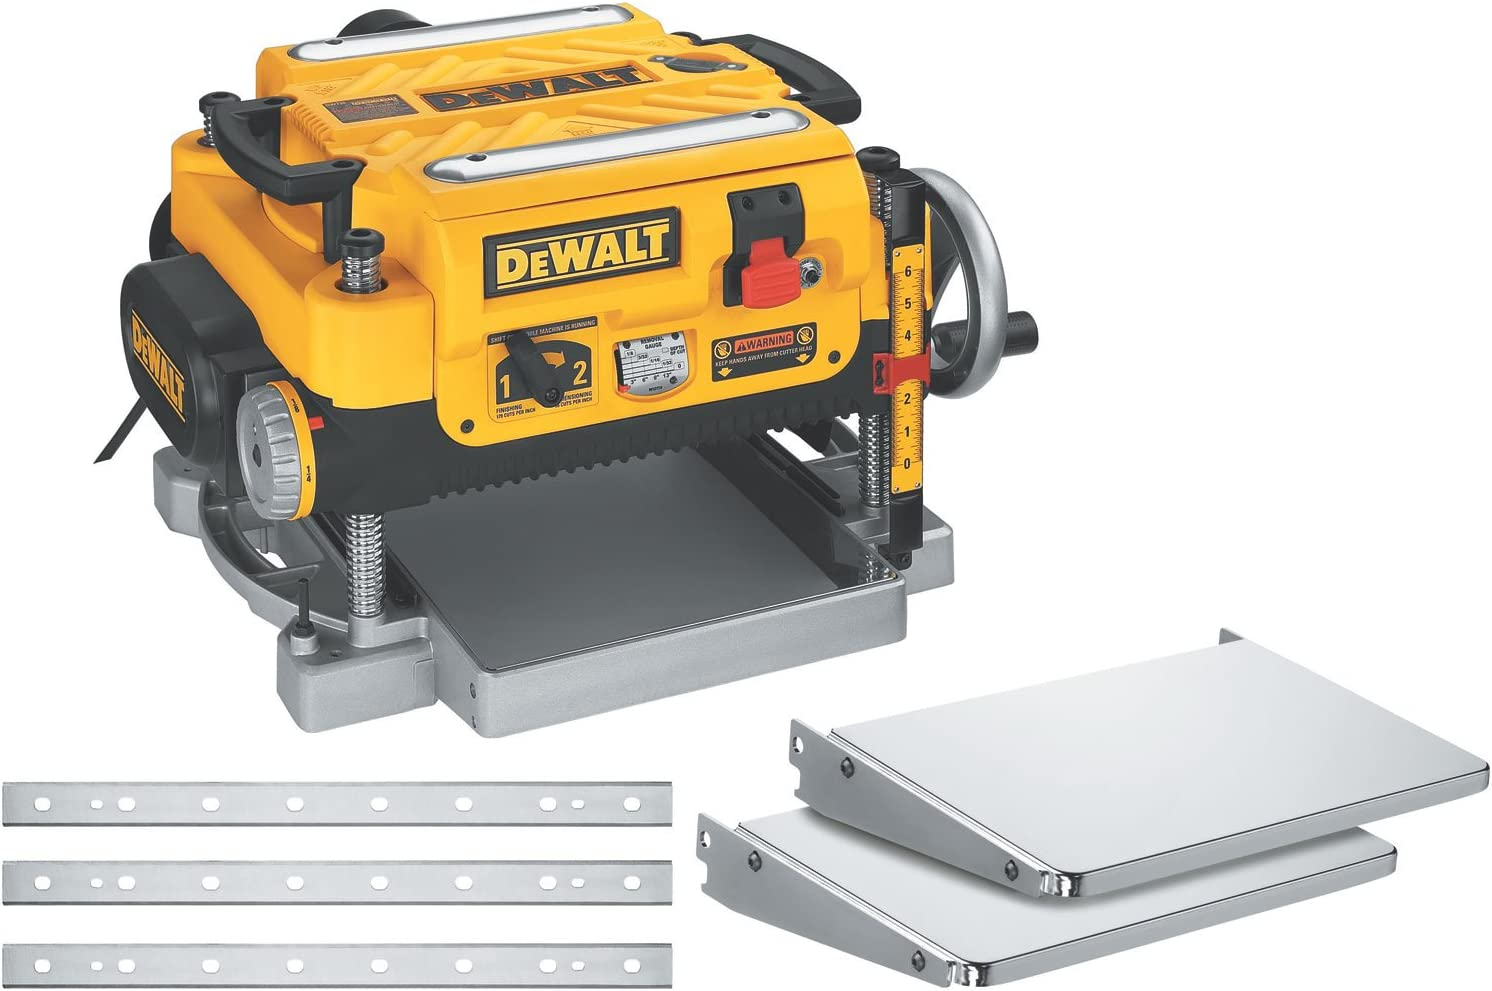 4. DeWALT DW735X Variable Speed Thickness Planer